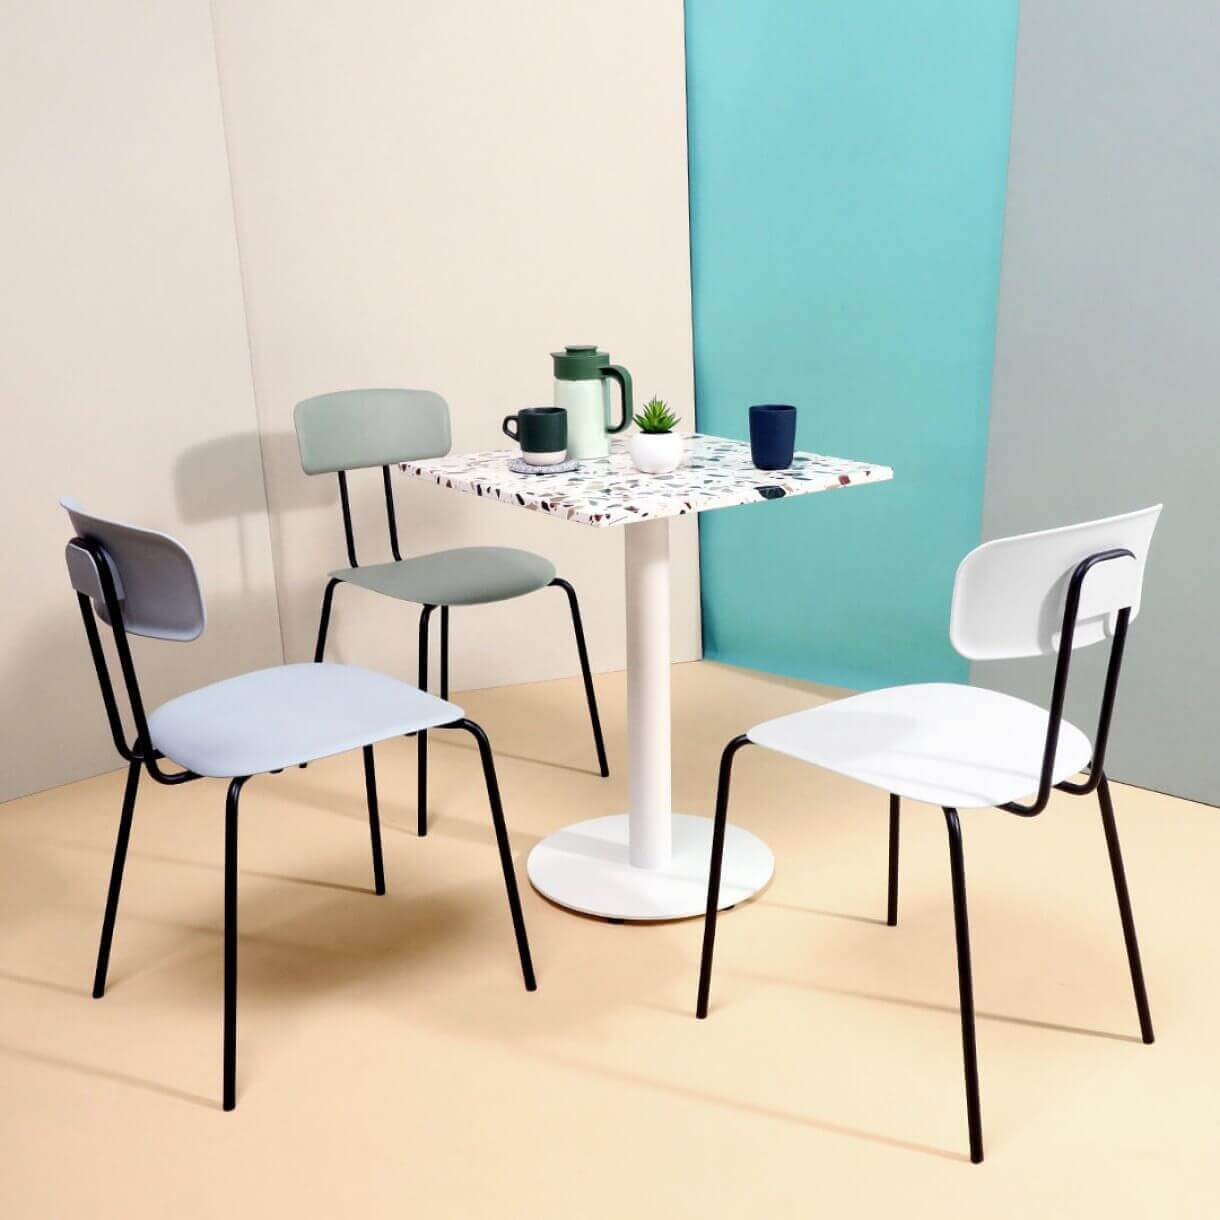 Choose Dining Furniture with Easy to Wipe Surfaces for the Restaurant - Comfort Furniture